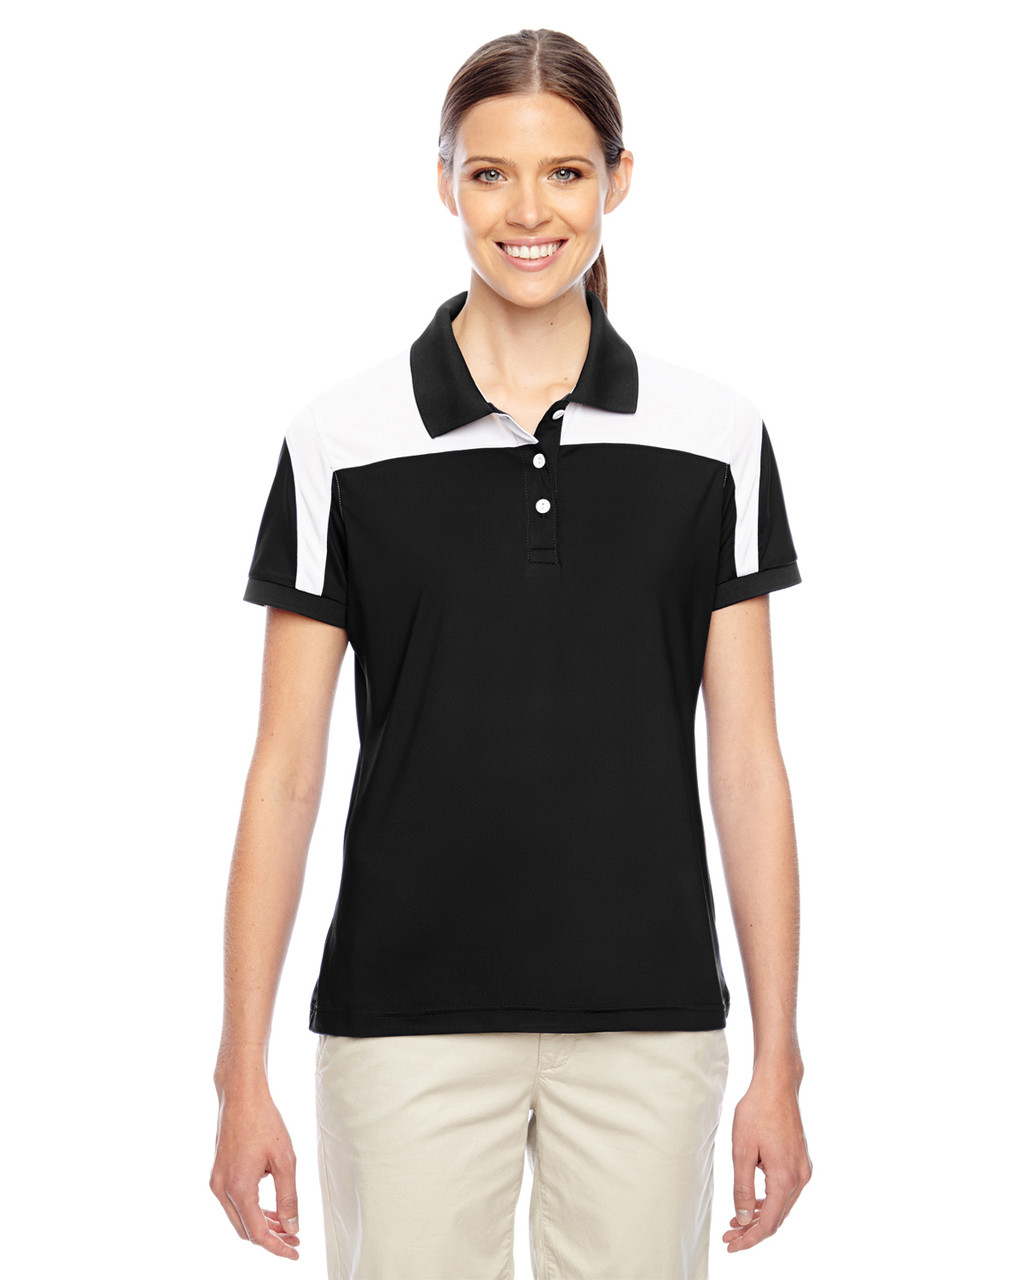 Black/White - TT22W Team 365 Victor Performance Polo Shirt